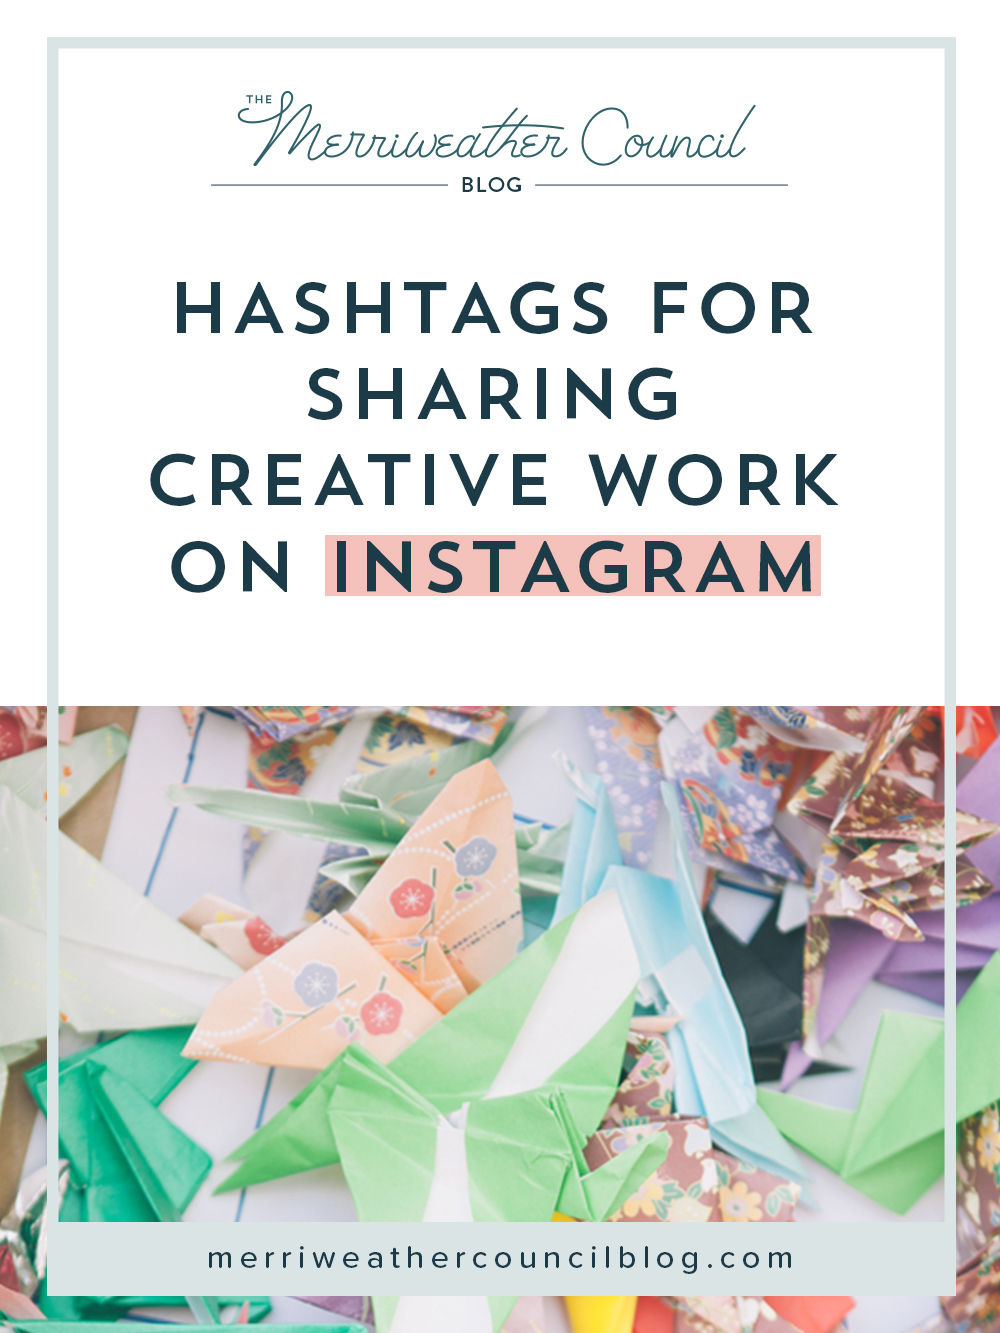 six hashtags for sharing creative work on instagram | the merriweather council blog